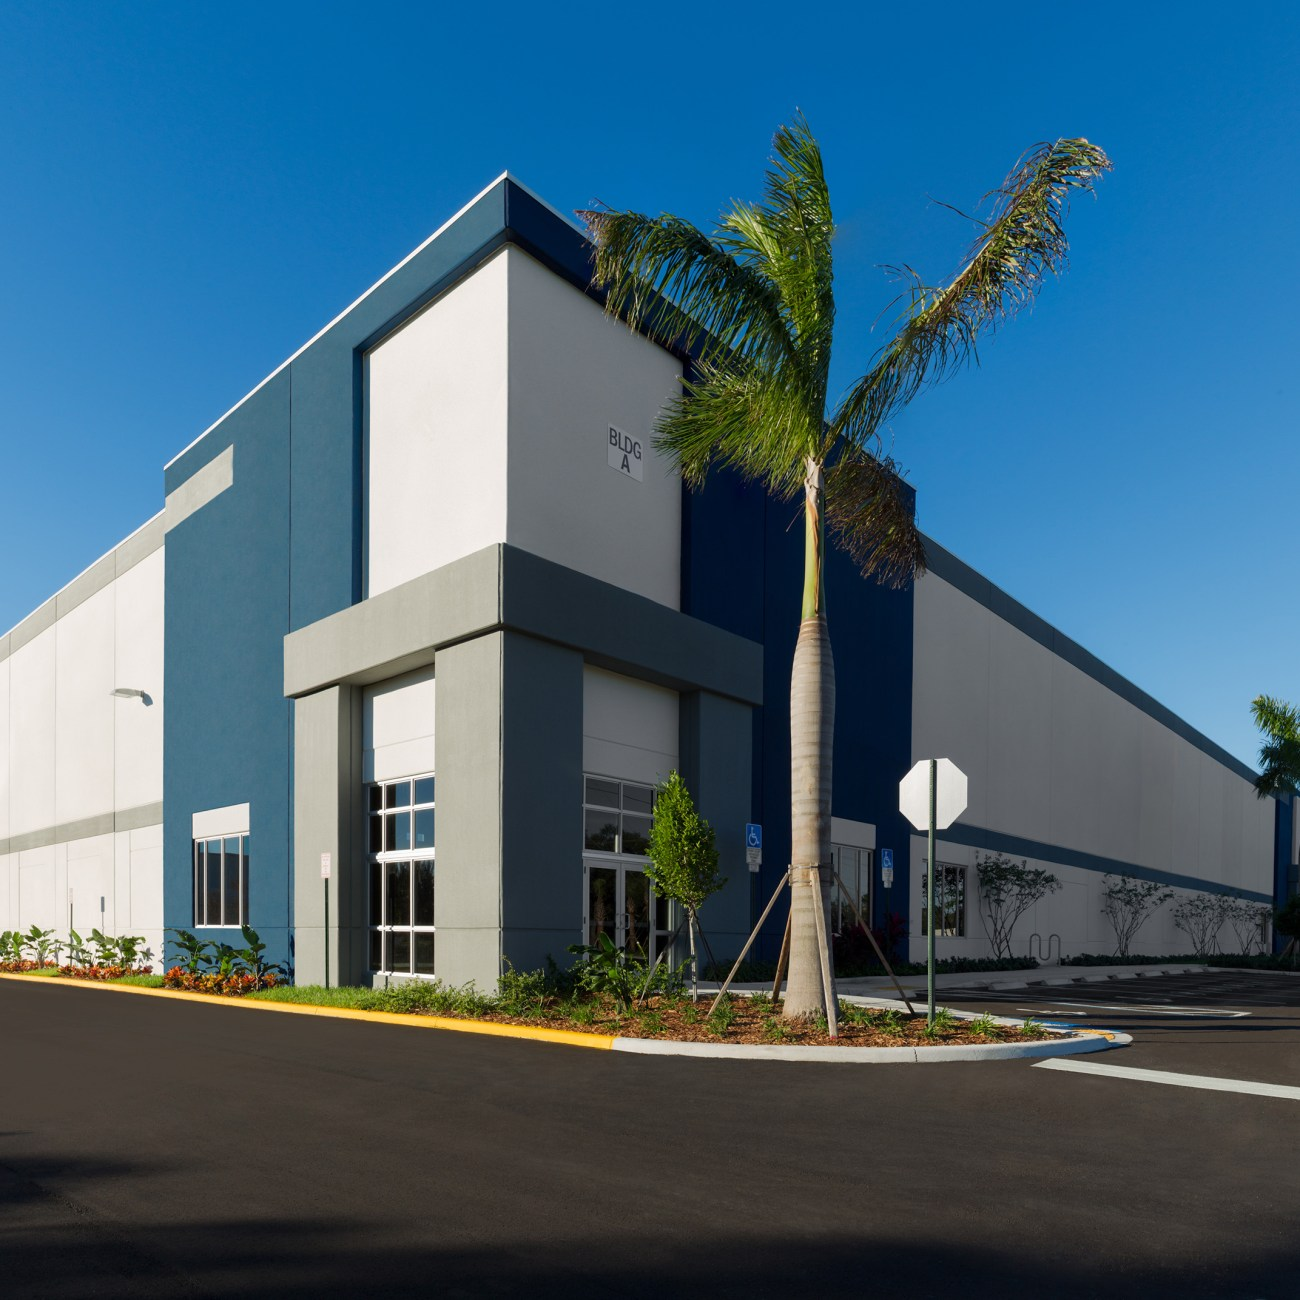 Cushman & Wakefield Brings Port 95 Business Center to Full Occupancy